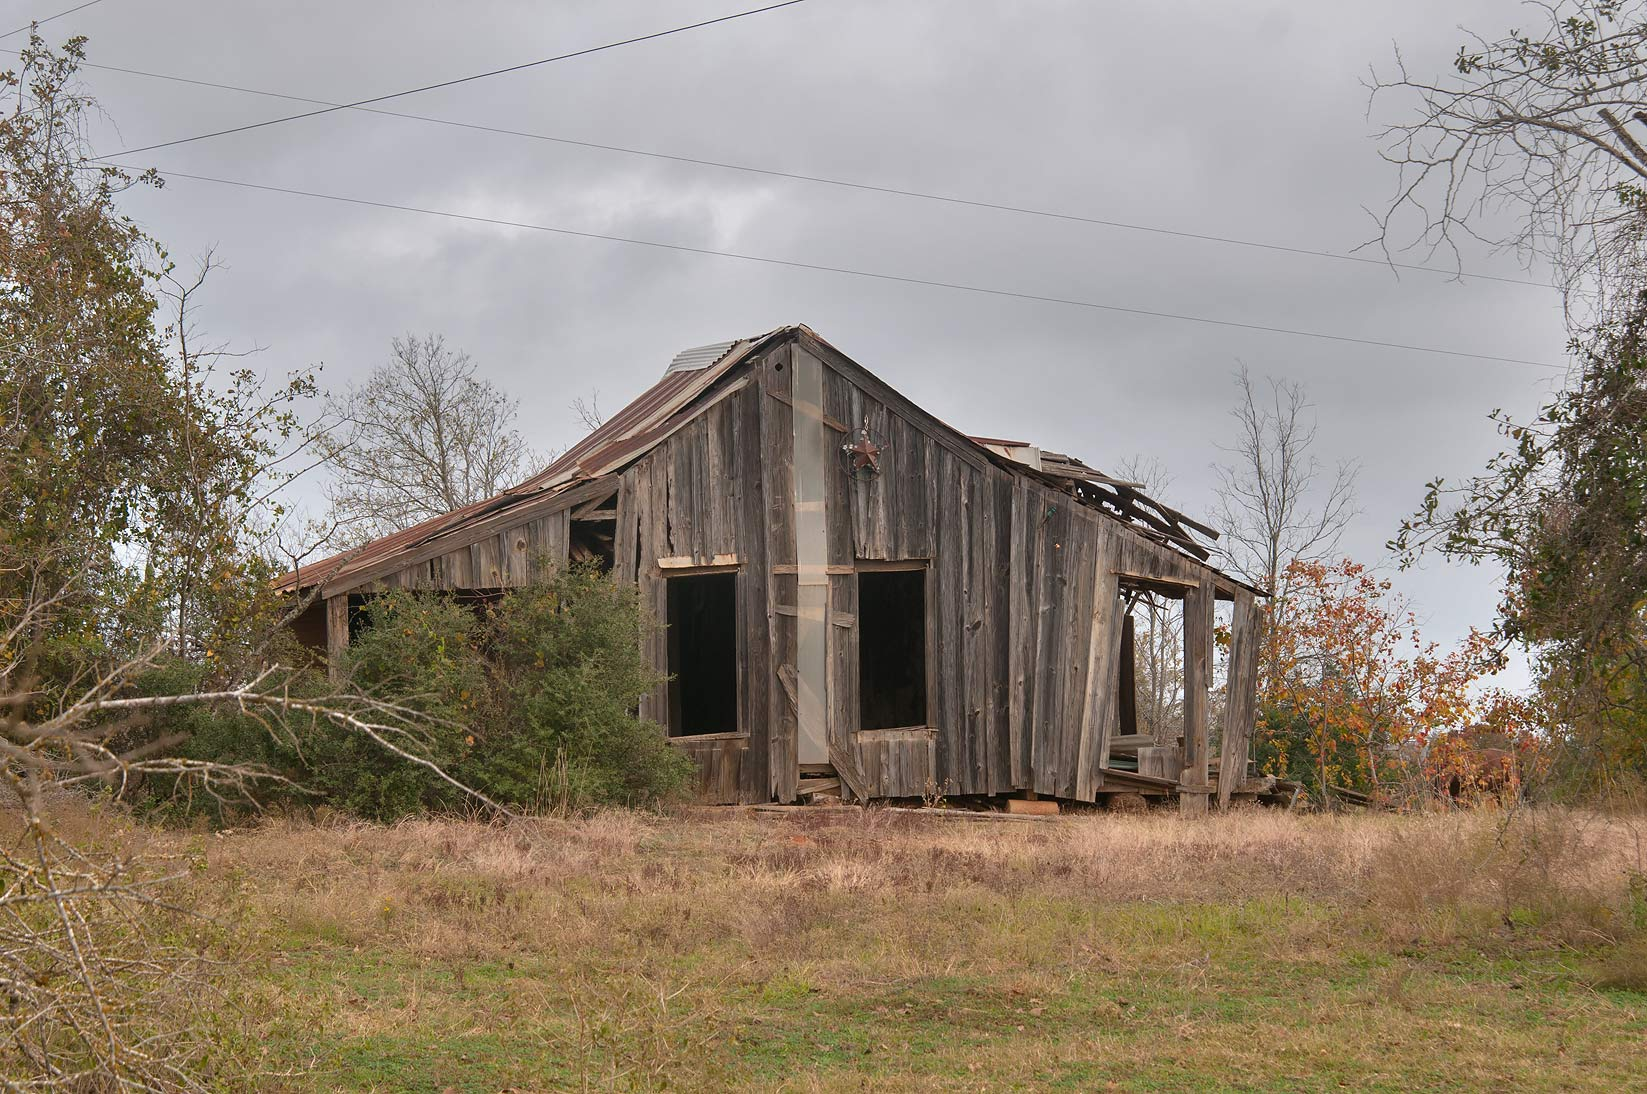 College Station-Bryant Station, Texas  - Old barn at Rd. 330 near Milano. Texas